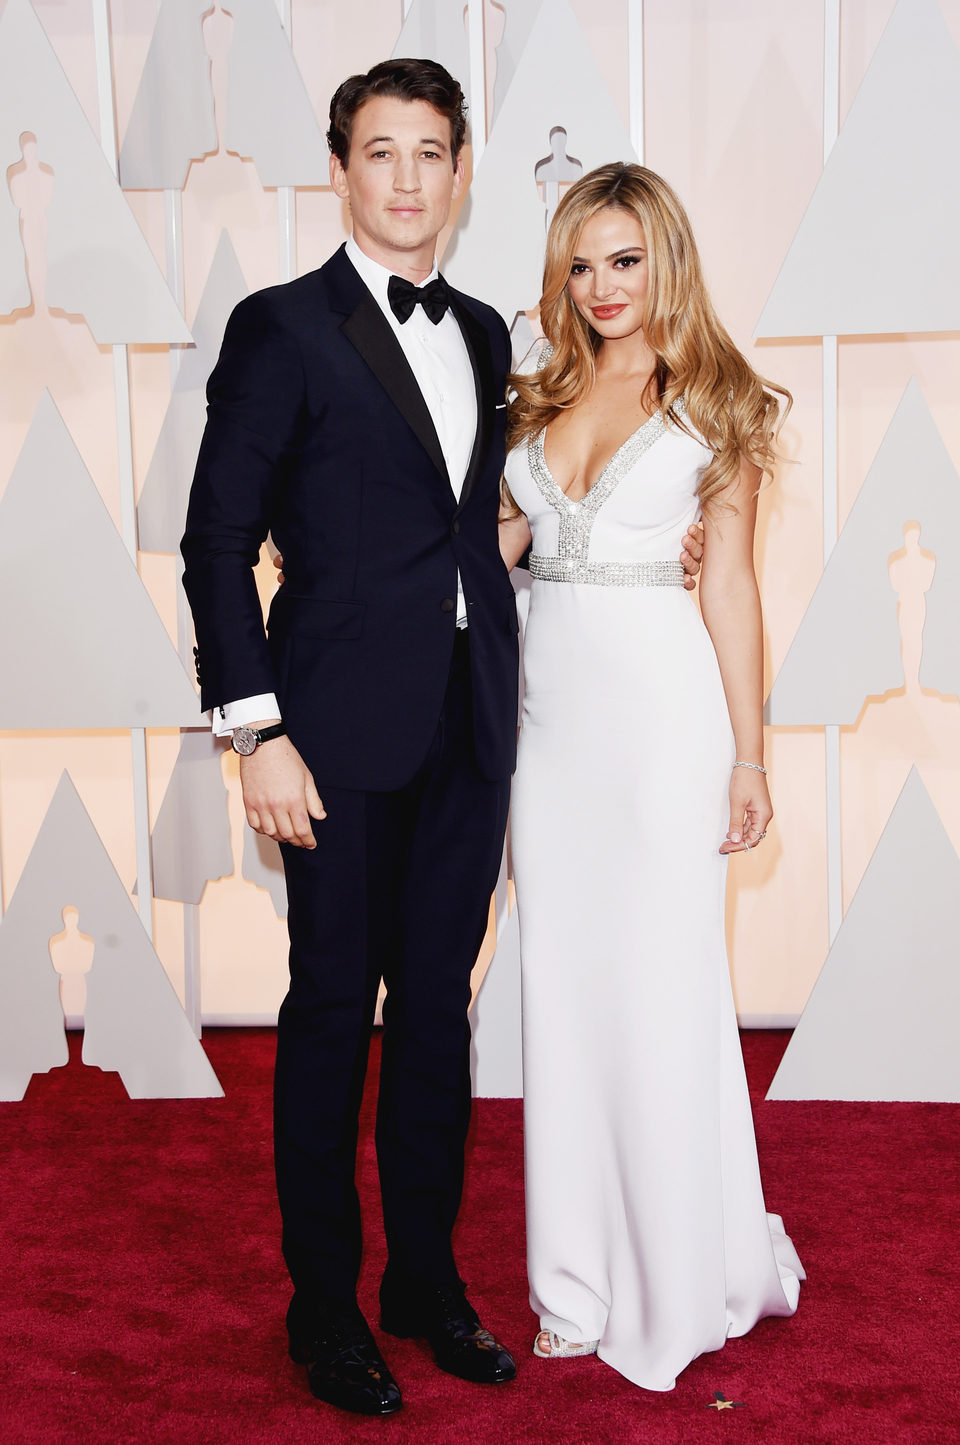 Miles Teller net to his girlfriend Keleigh Sperry at the Oscars Awards 2015 red carpet